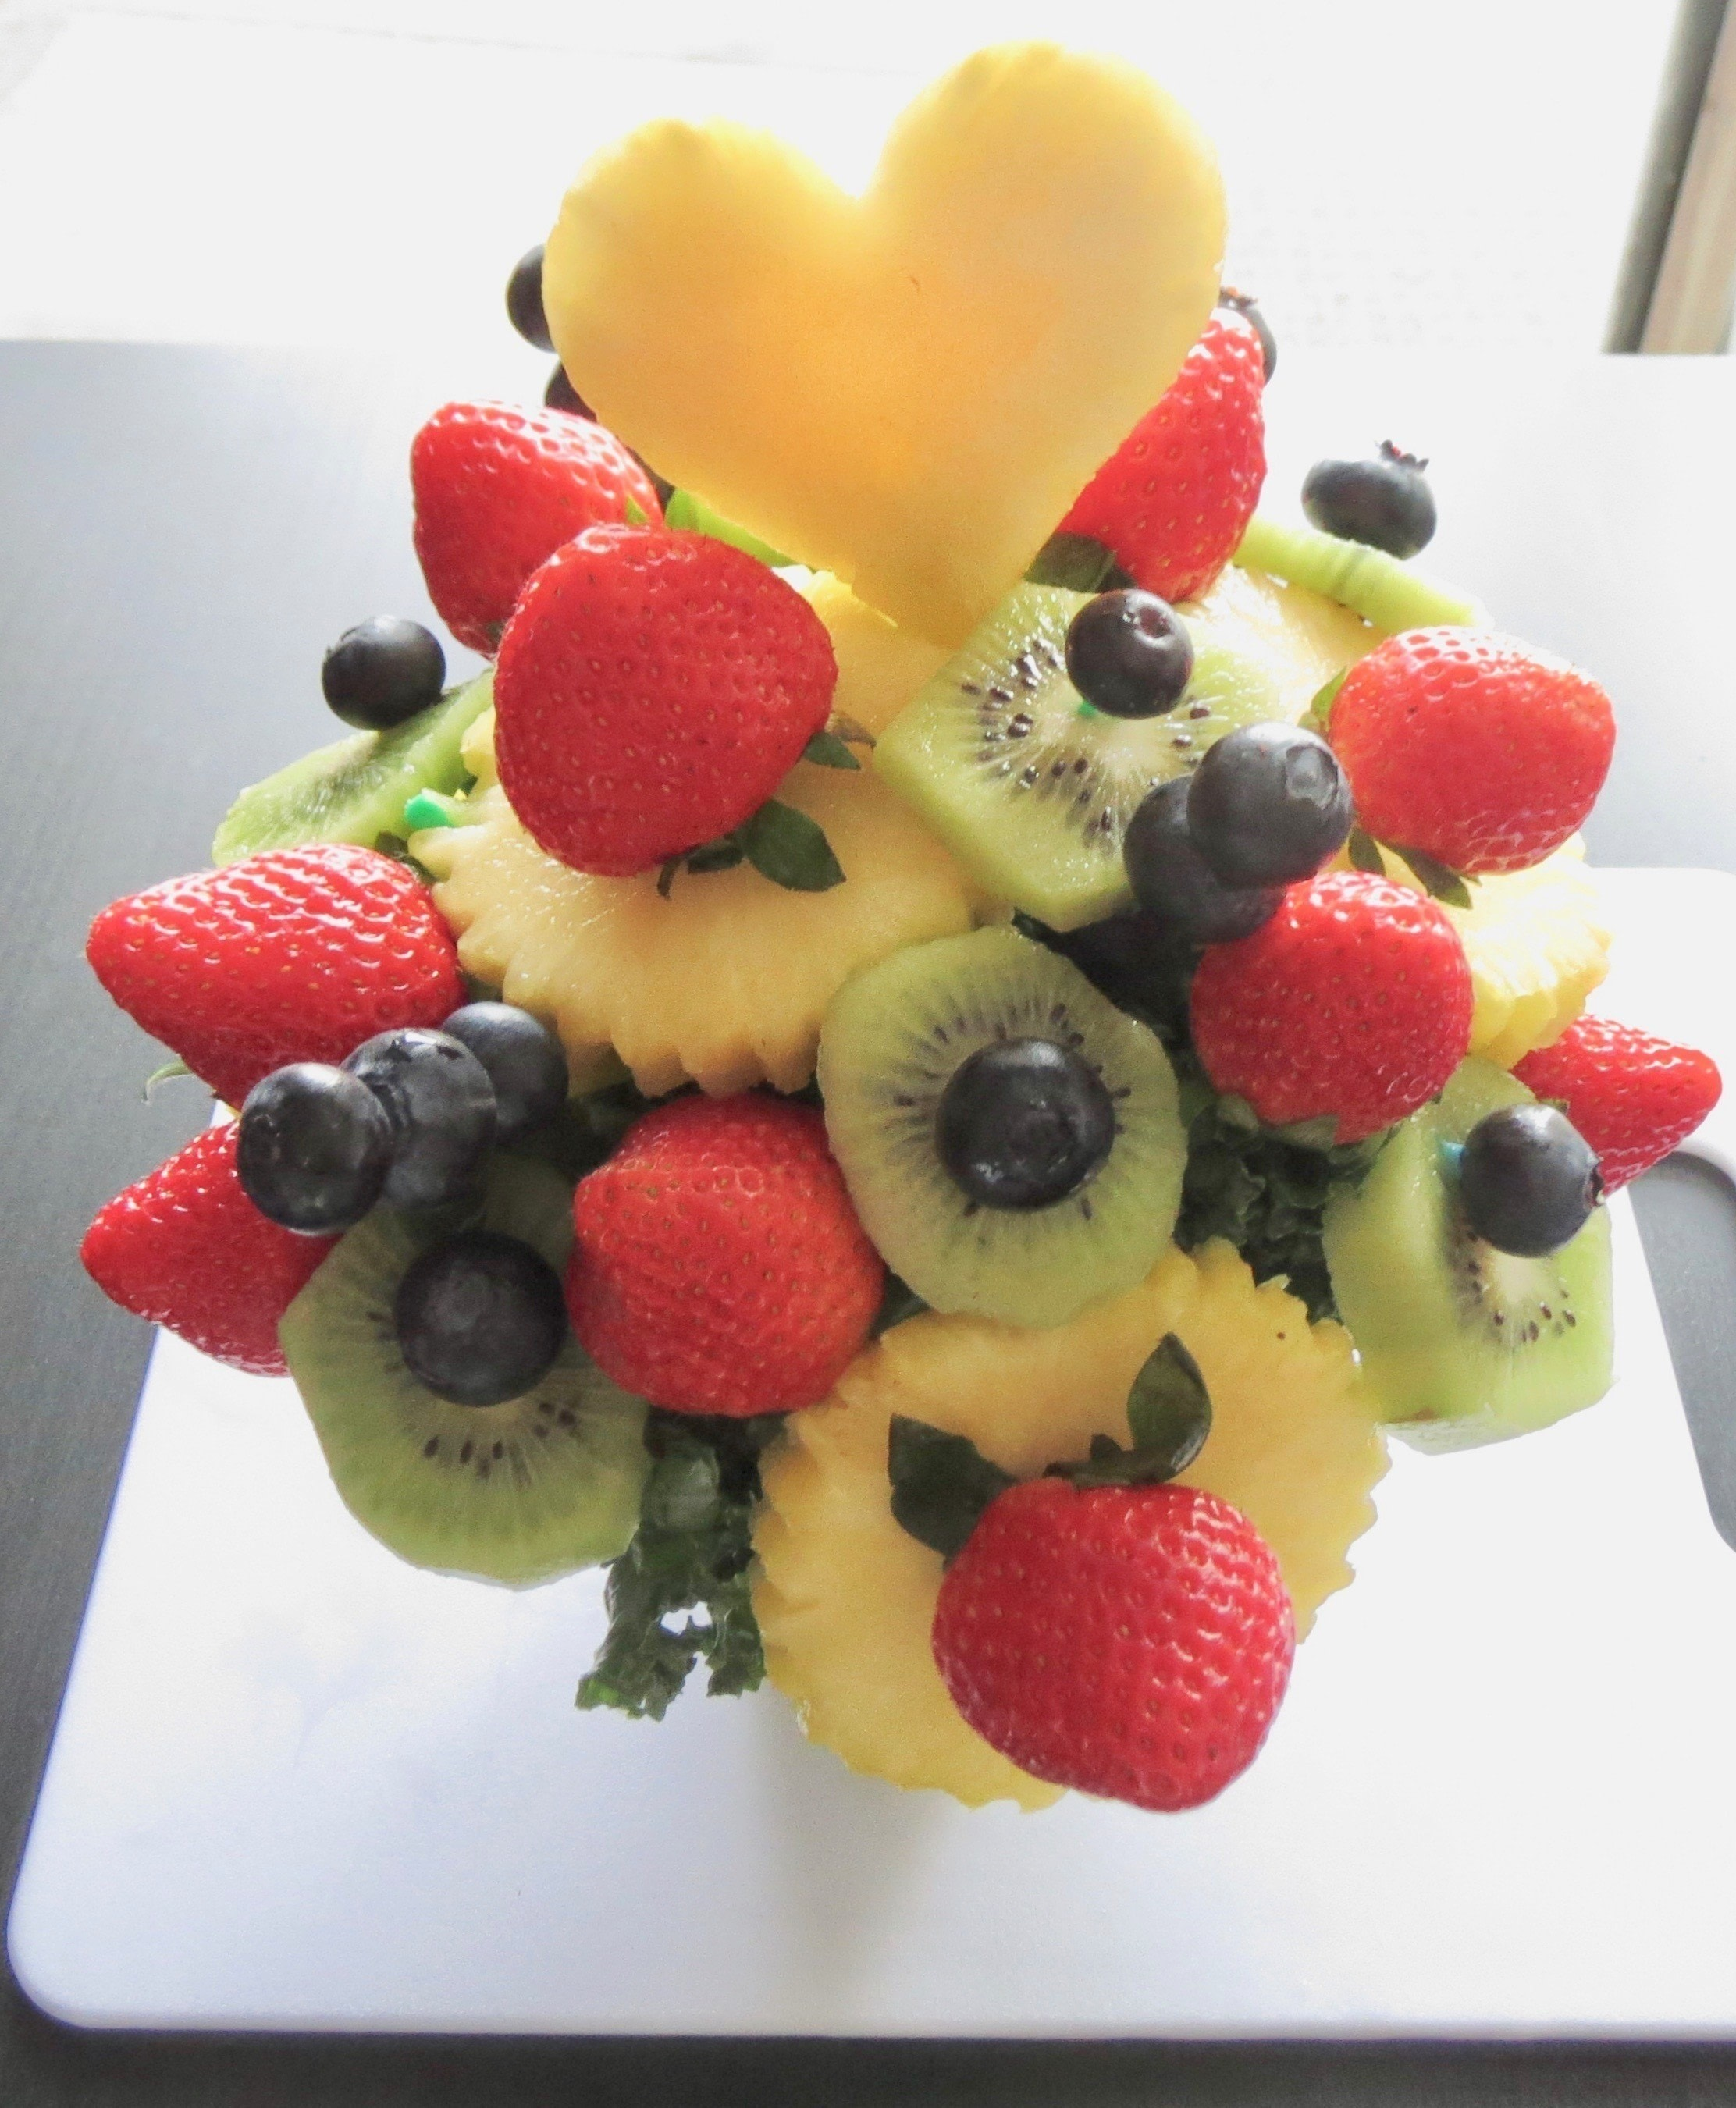 Delectable Decorations Fruit Design How To Make A Fruit Dessert